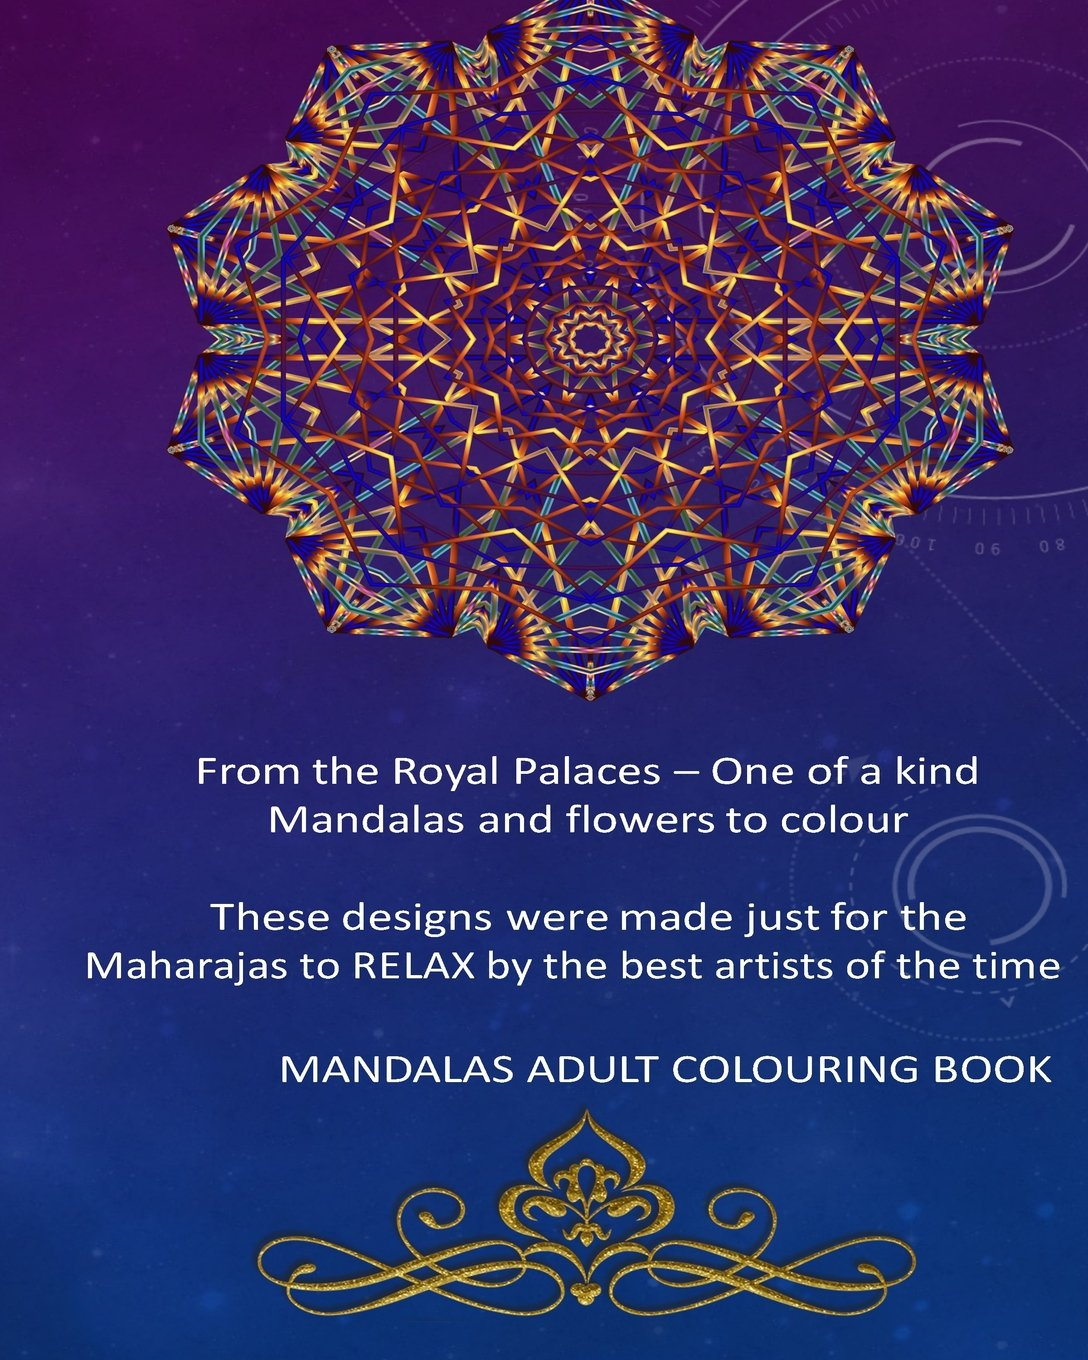 Download MANDALAS ADULT COLOURING BOOK - From the Royal Palaces ? One of a kind Mandalas: These designs were made just for the Maharajas to RELAX by the best artists of the time pdf